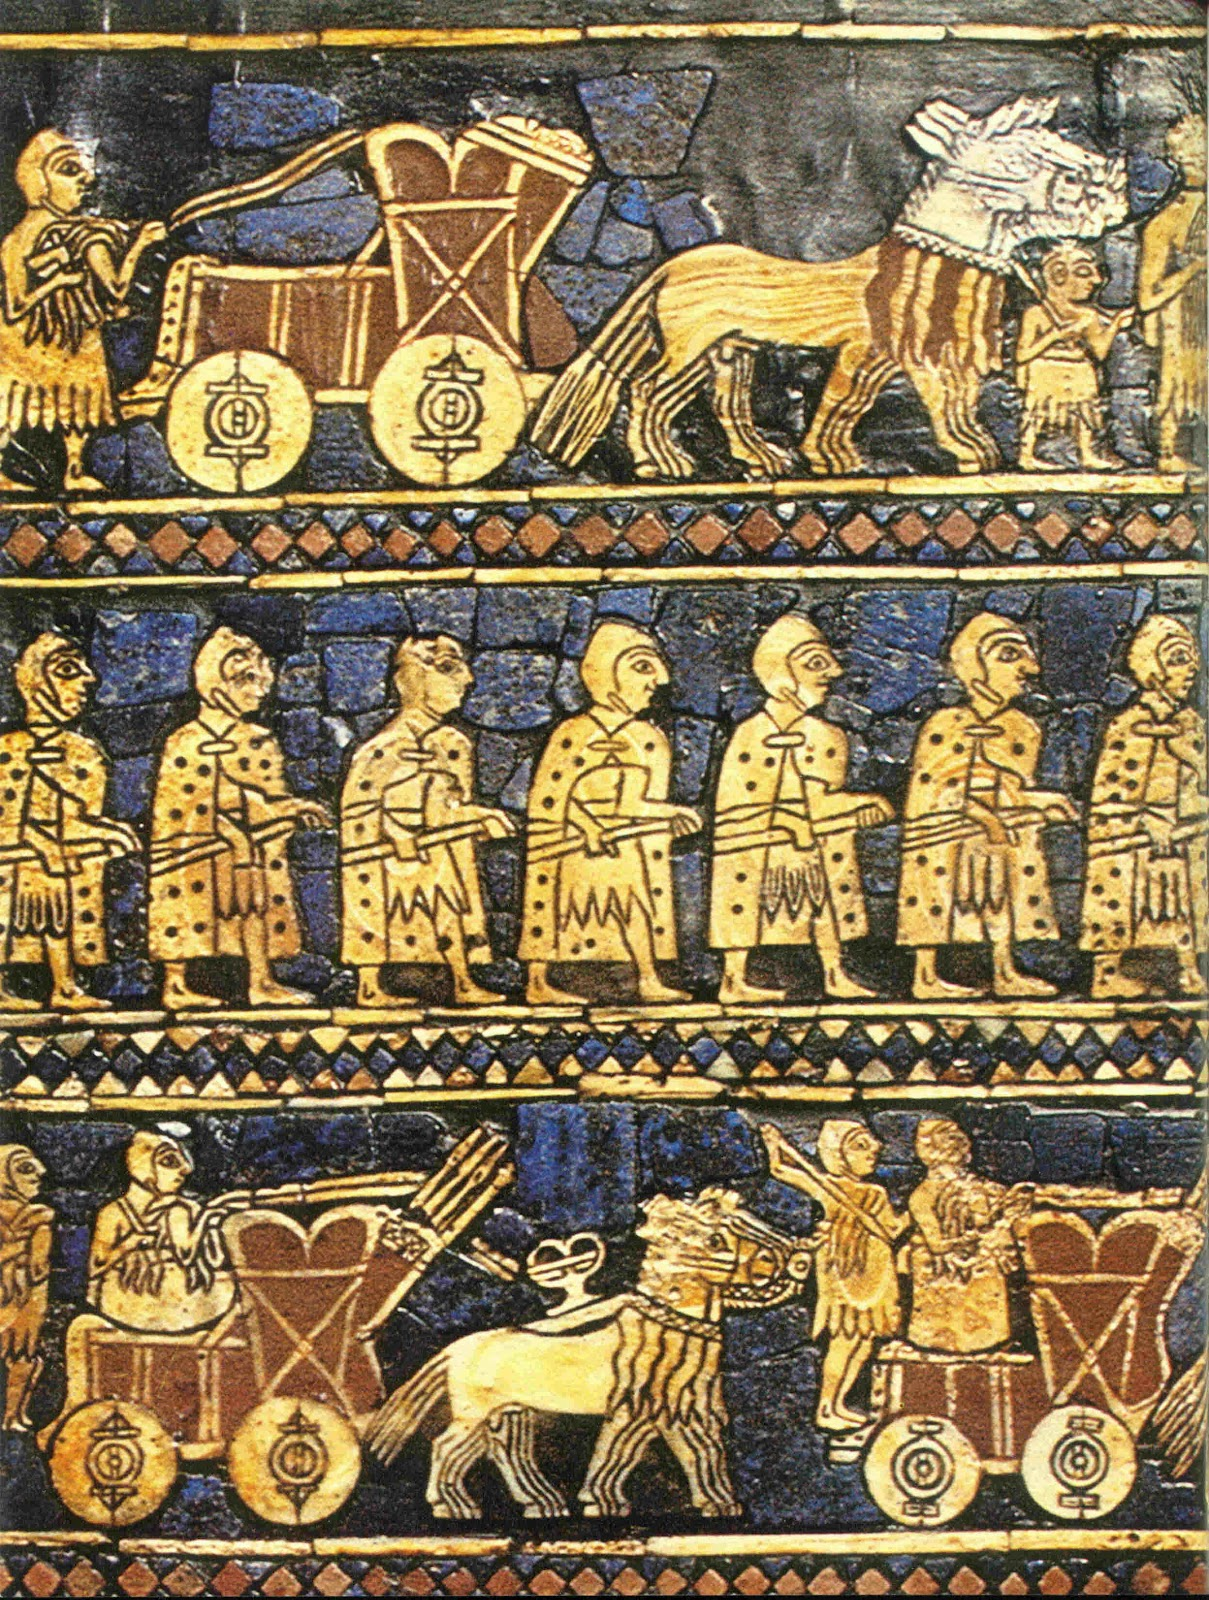 6c - war marching scene, the gods directed the kings to war against other kings not loyal to the that particular patron god, alien giant cousins using earthlings to fight their battles, sometimes the gods would partake in the actual battle him or herself, using powerful alien weapons to soften the defences, & assure a favorable outcome, for instance Inanna - the Goddess of War fought along side with kings, SEE TEXTS ON KINGS